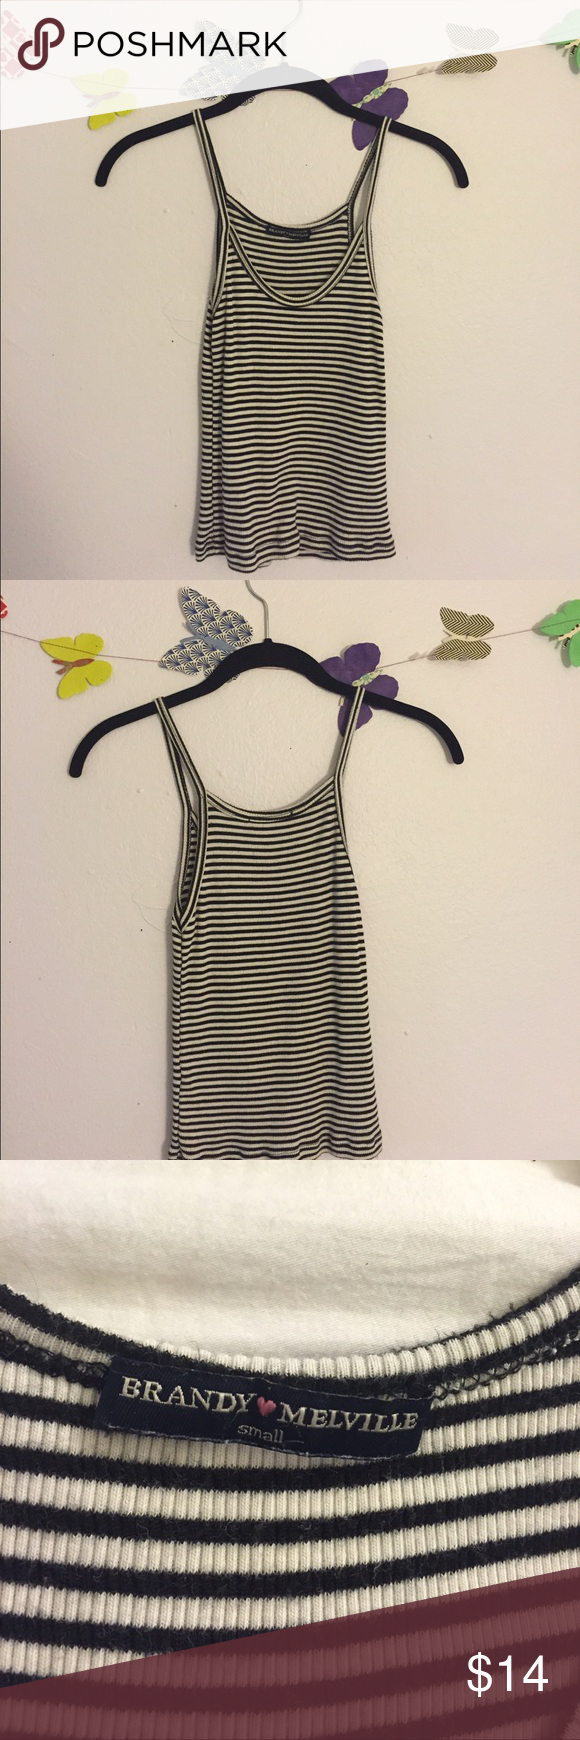 BRANDY JAMES TANK Brandy Melville striped tank    super stretchy and is a necessity for every closet🌸 worn once and has no signs of wear Brandy Melville Tops